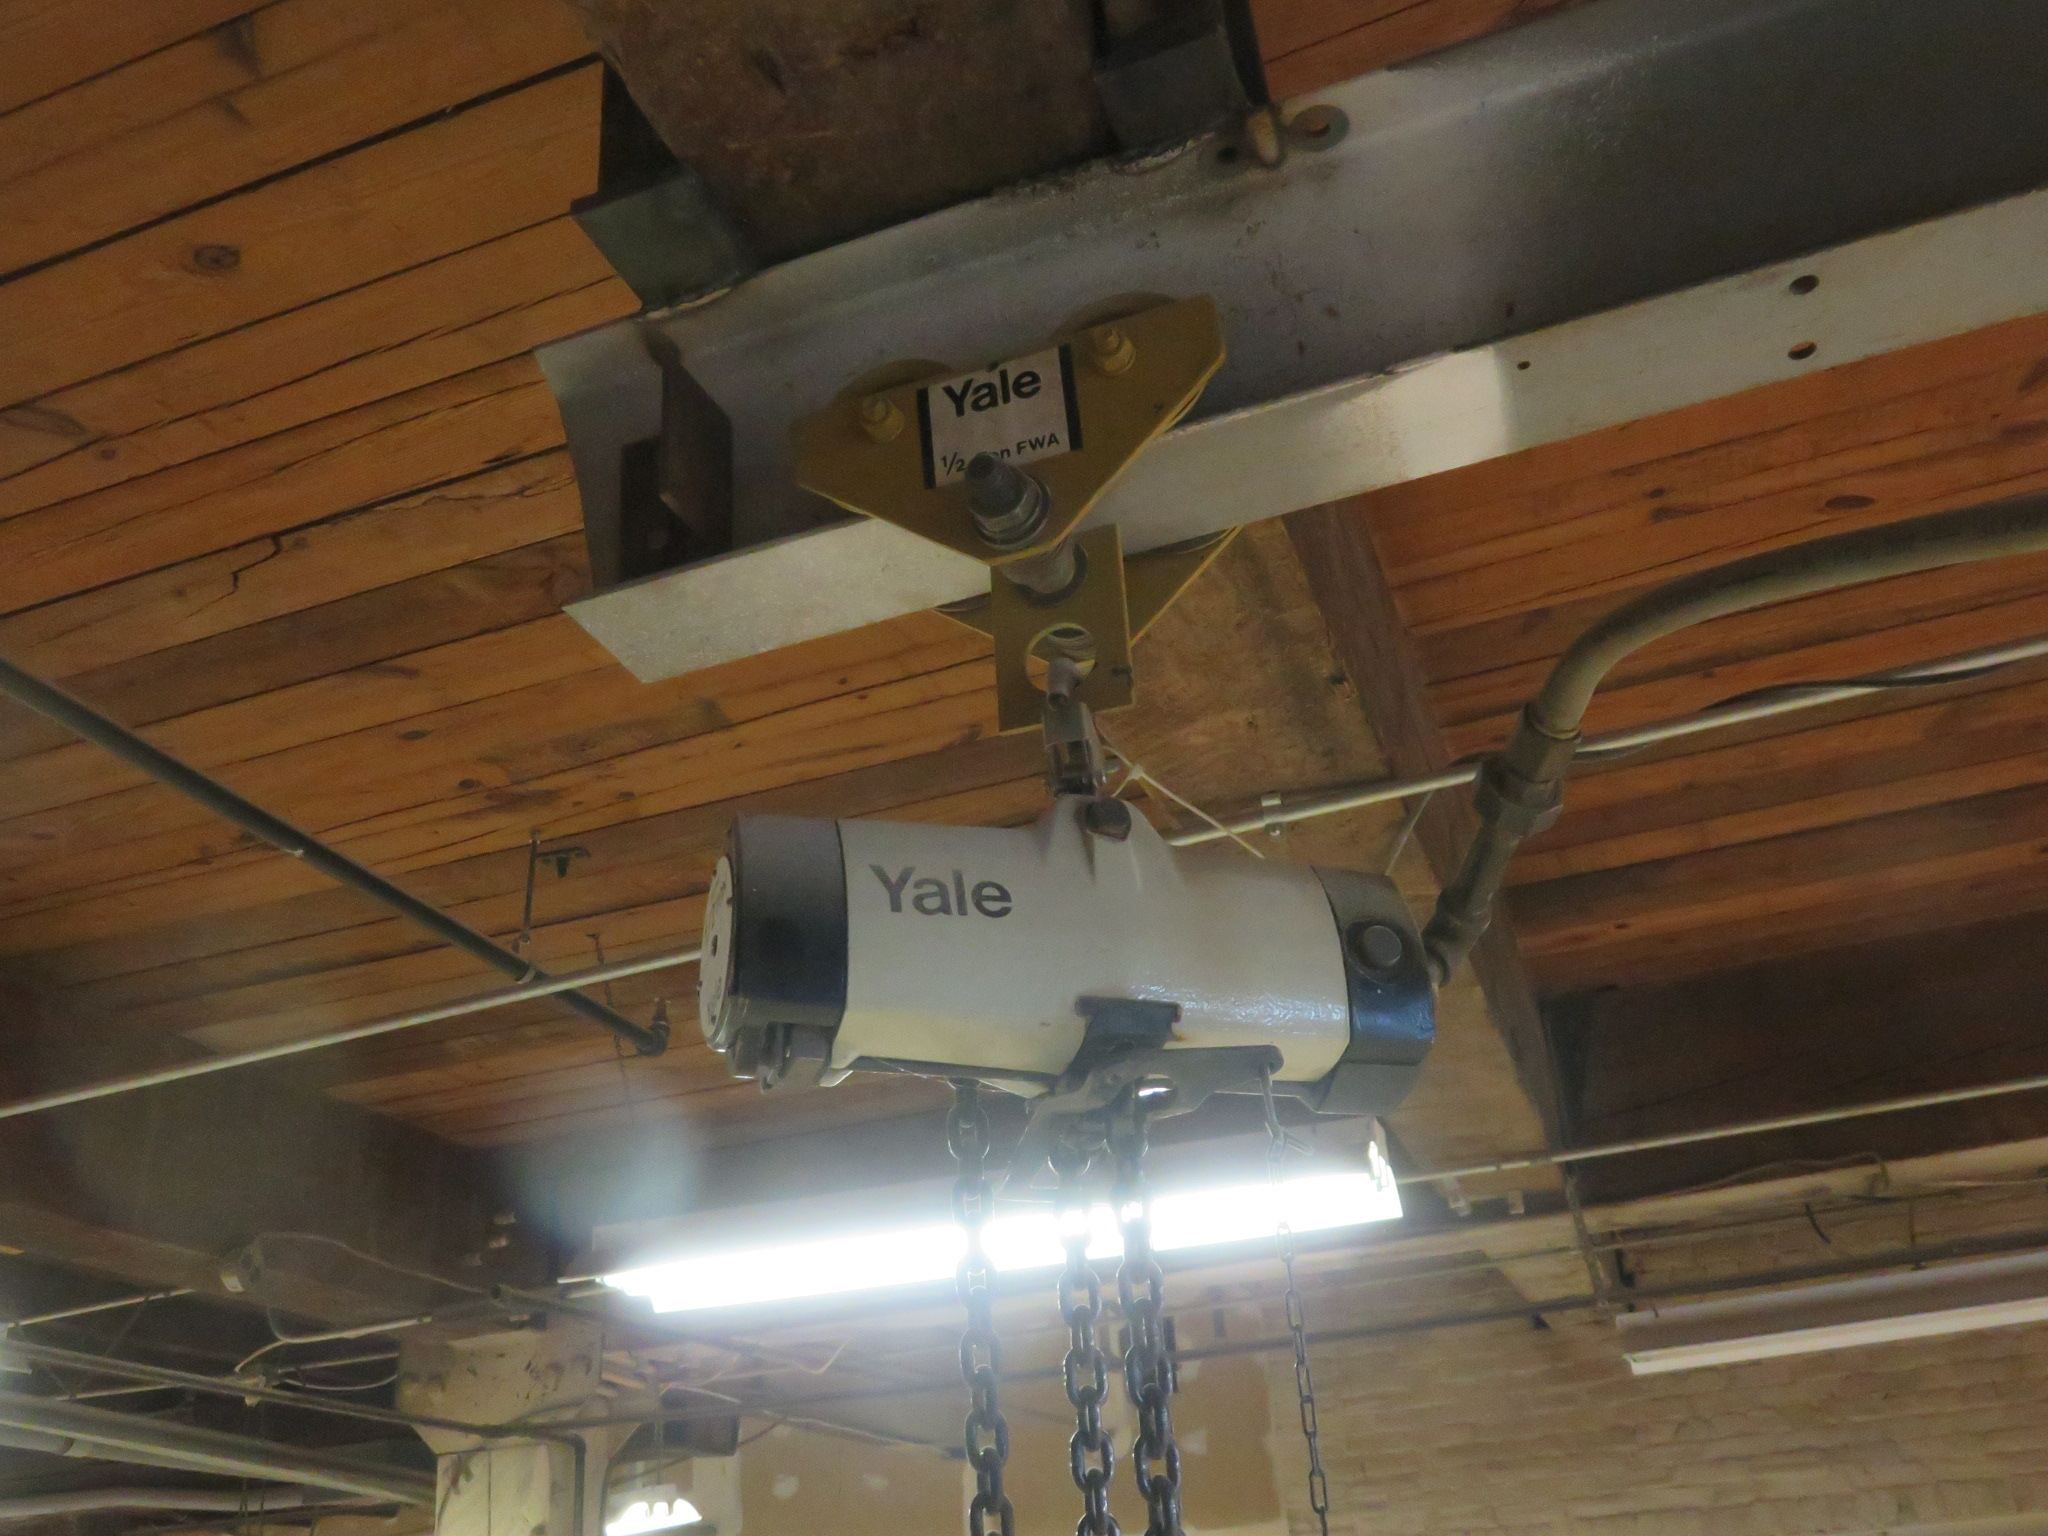 Yale 1/2 Ton Hoist and Trolley - Image 2 of 3